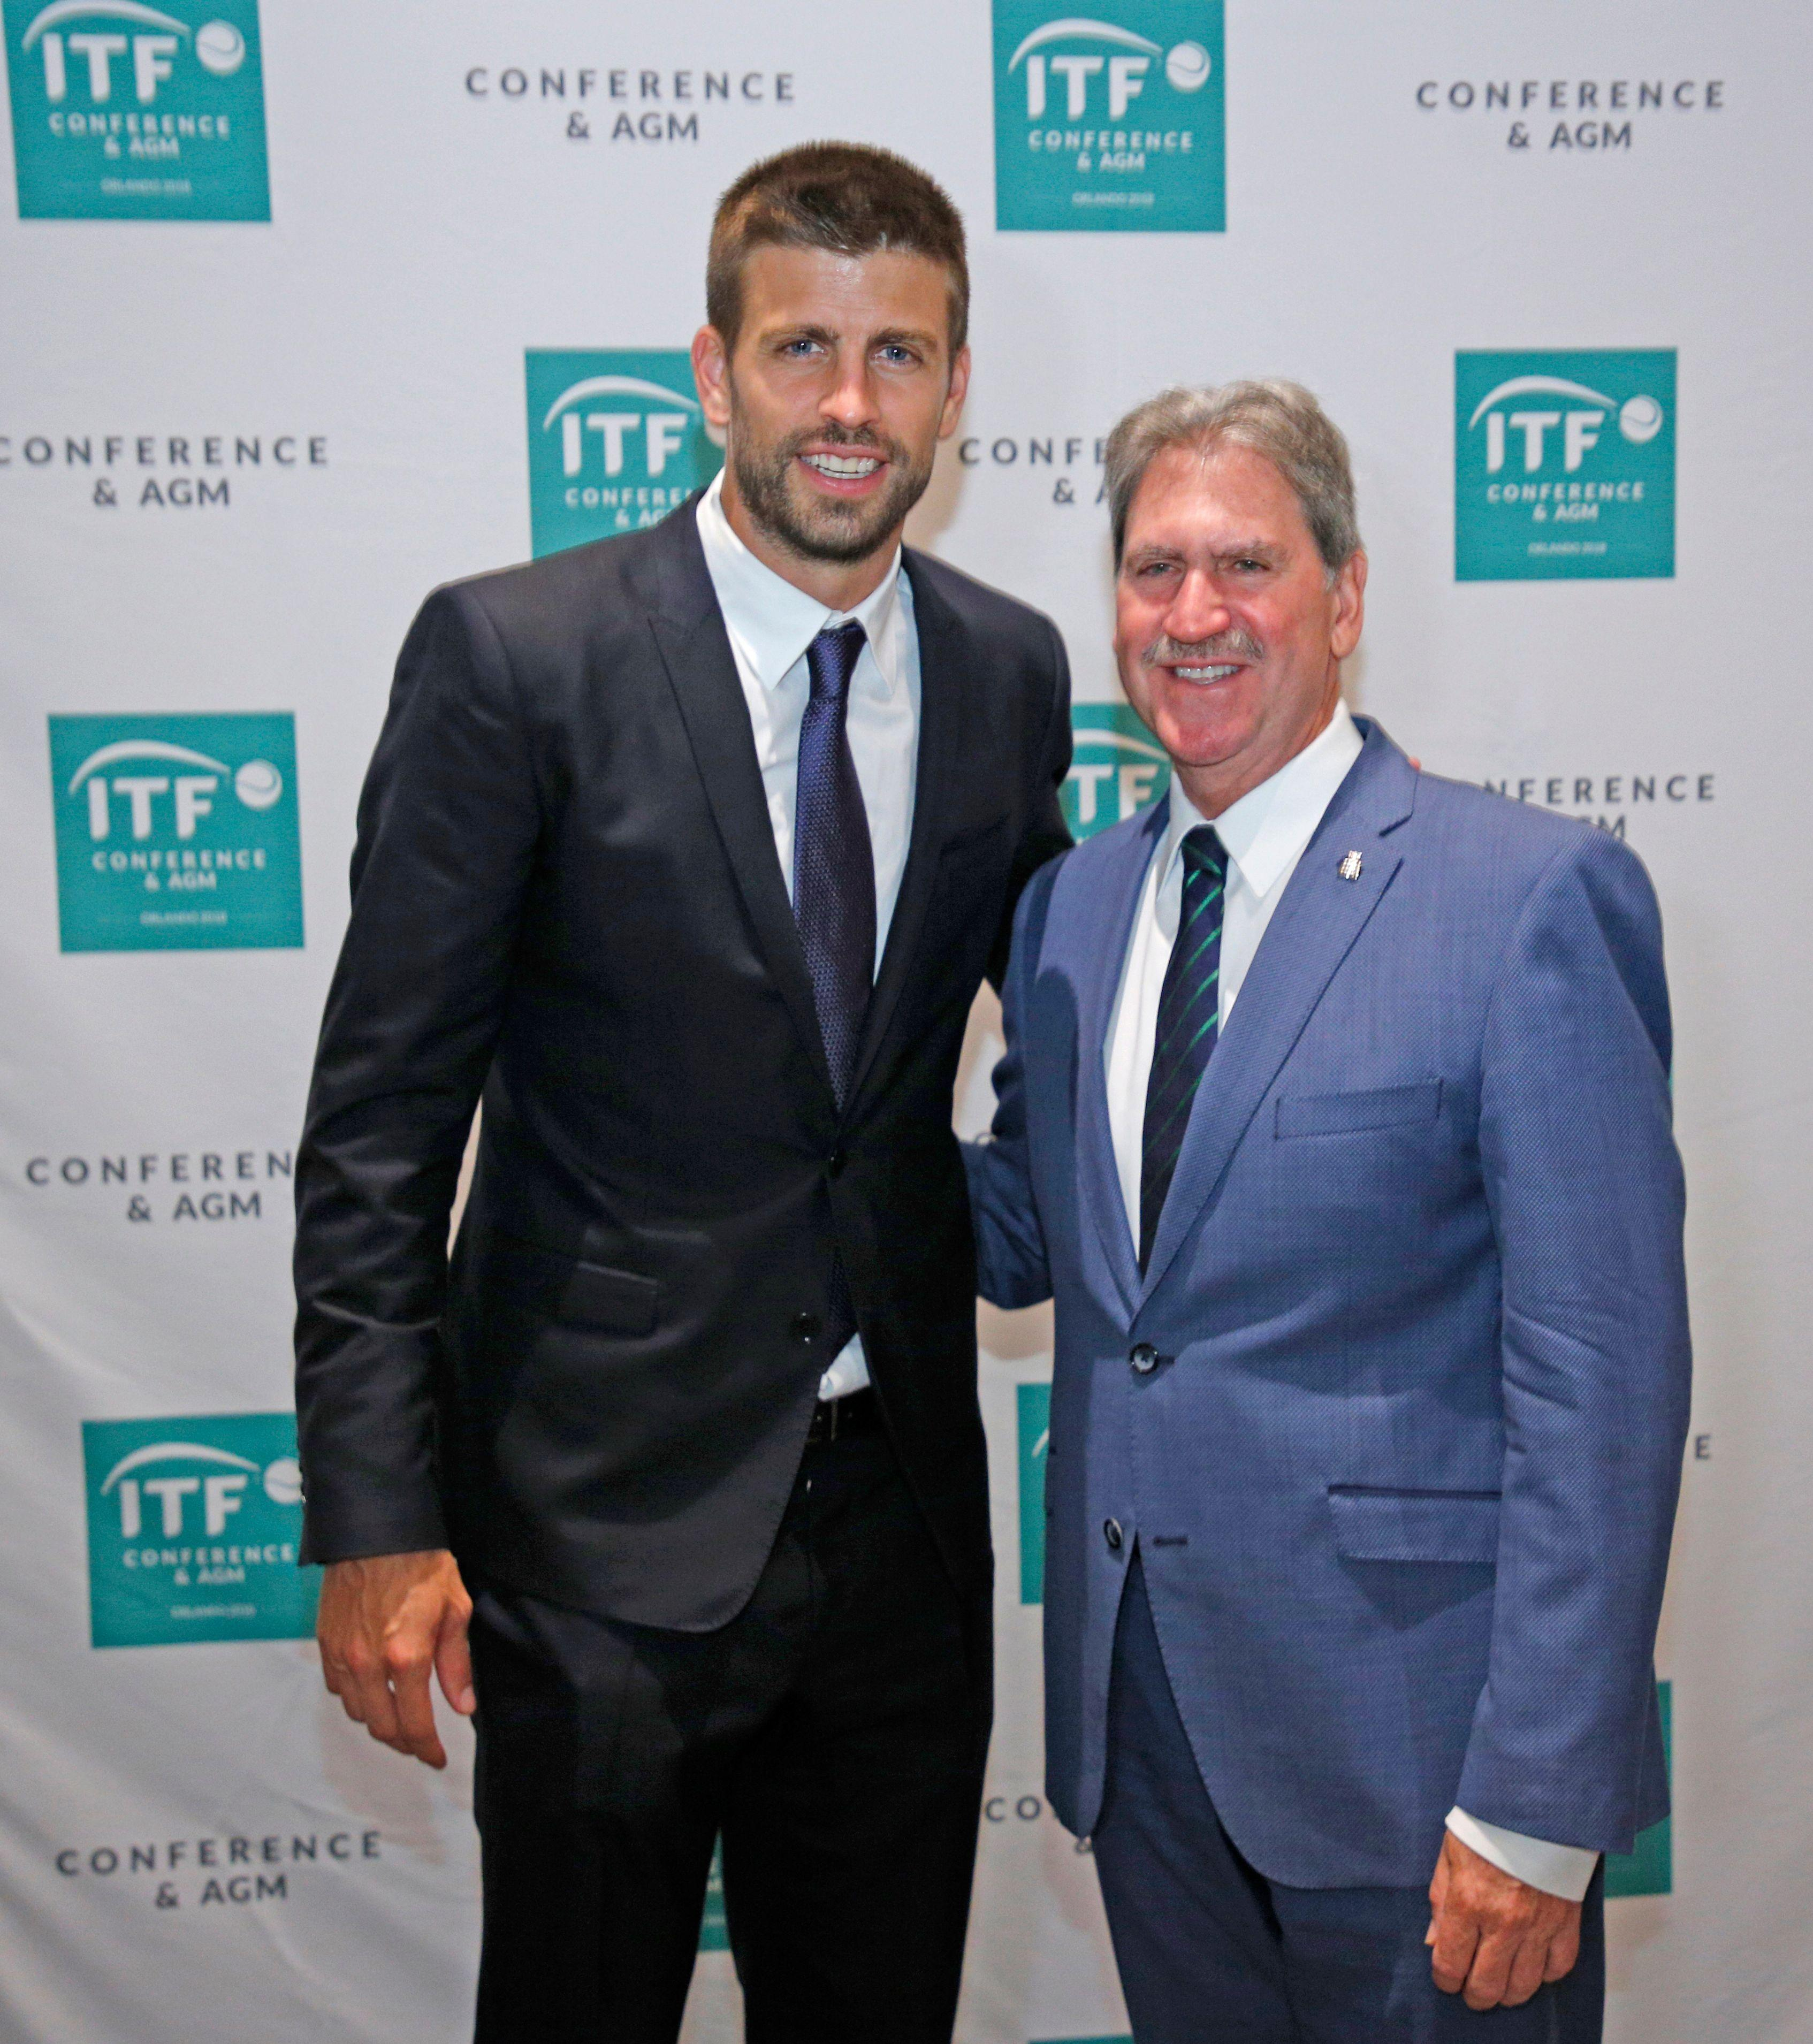 Gerard Pique and David Haggerty President of International Tennis Federation after rubber stamping Davis Cup changes